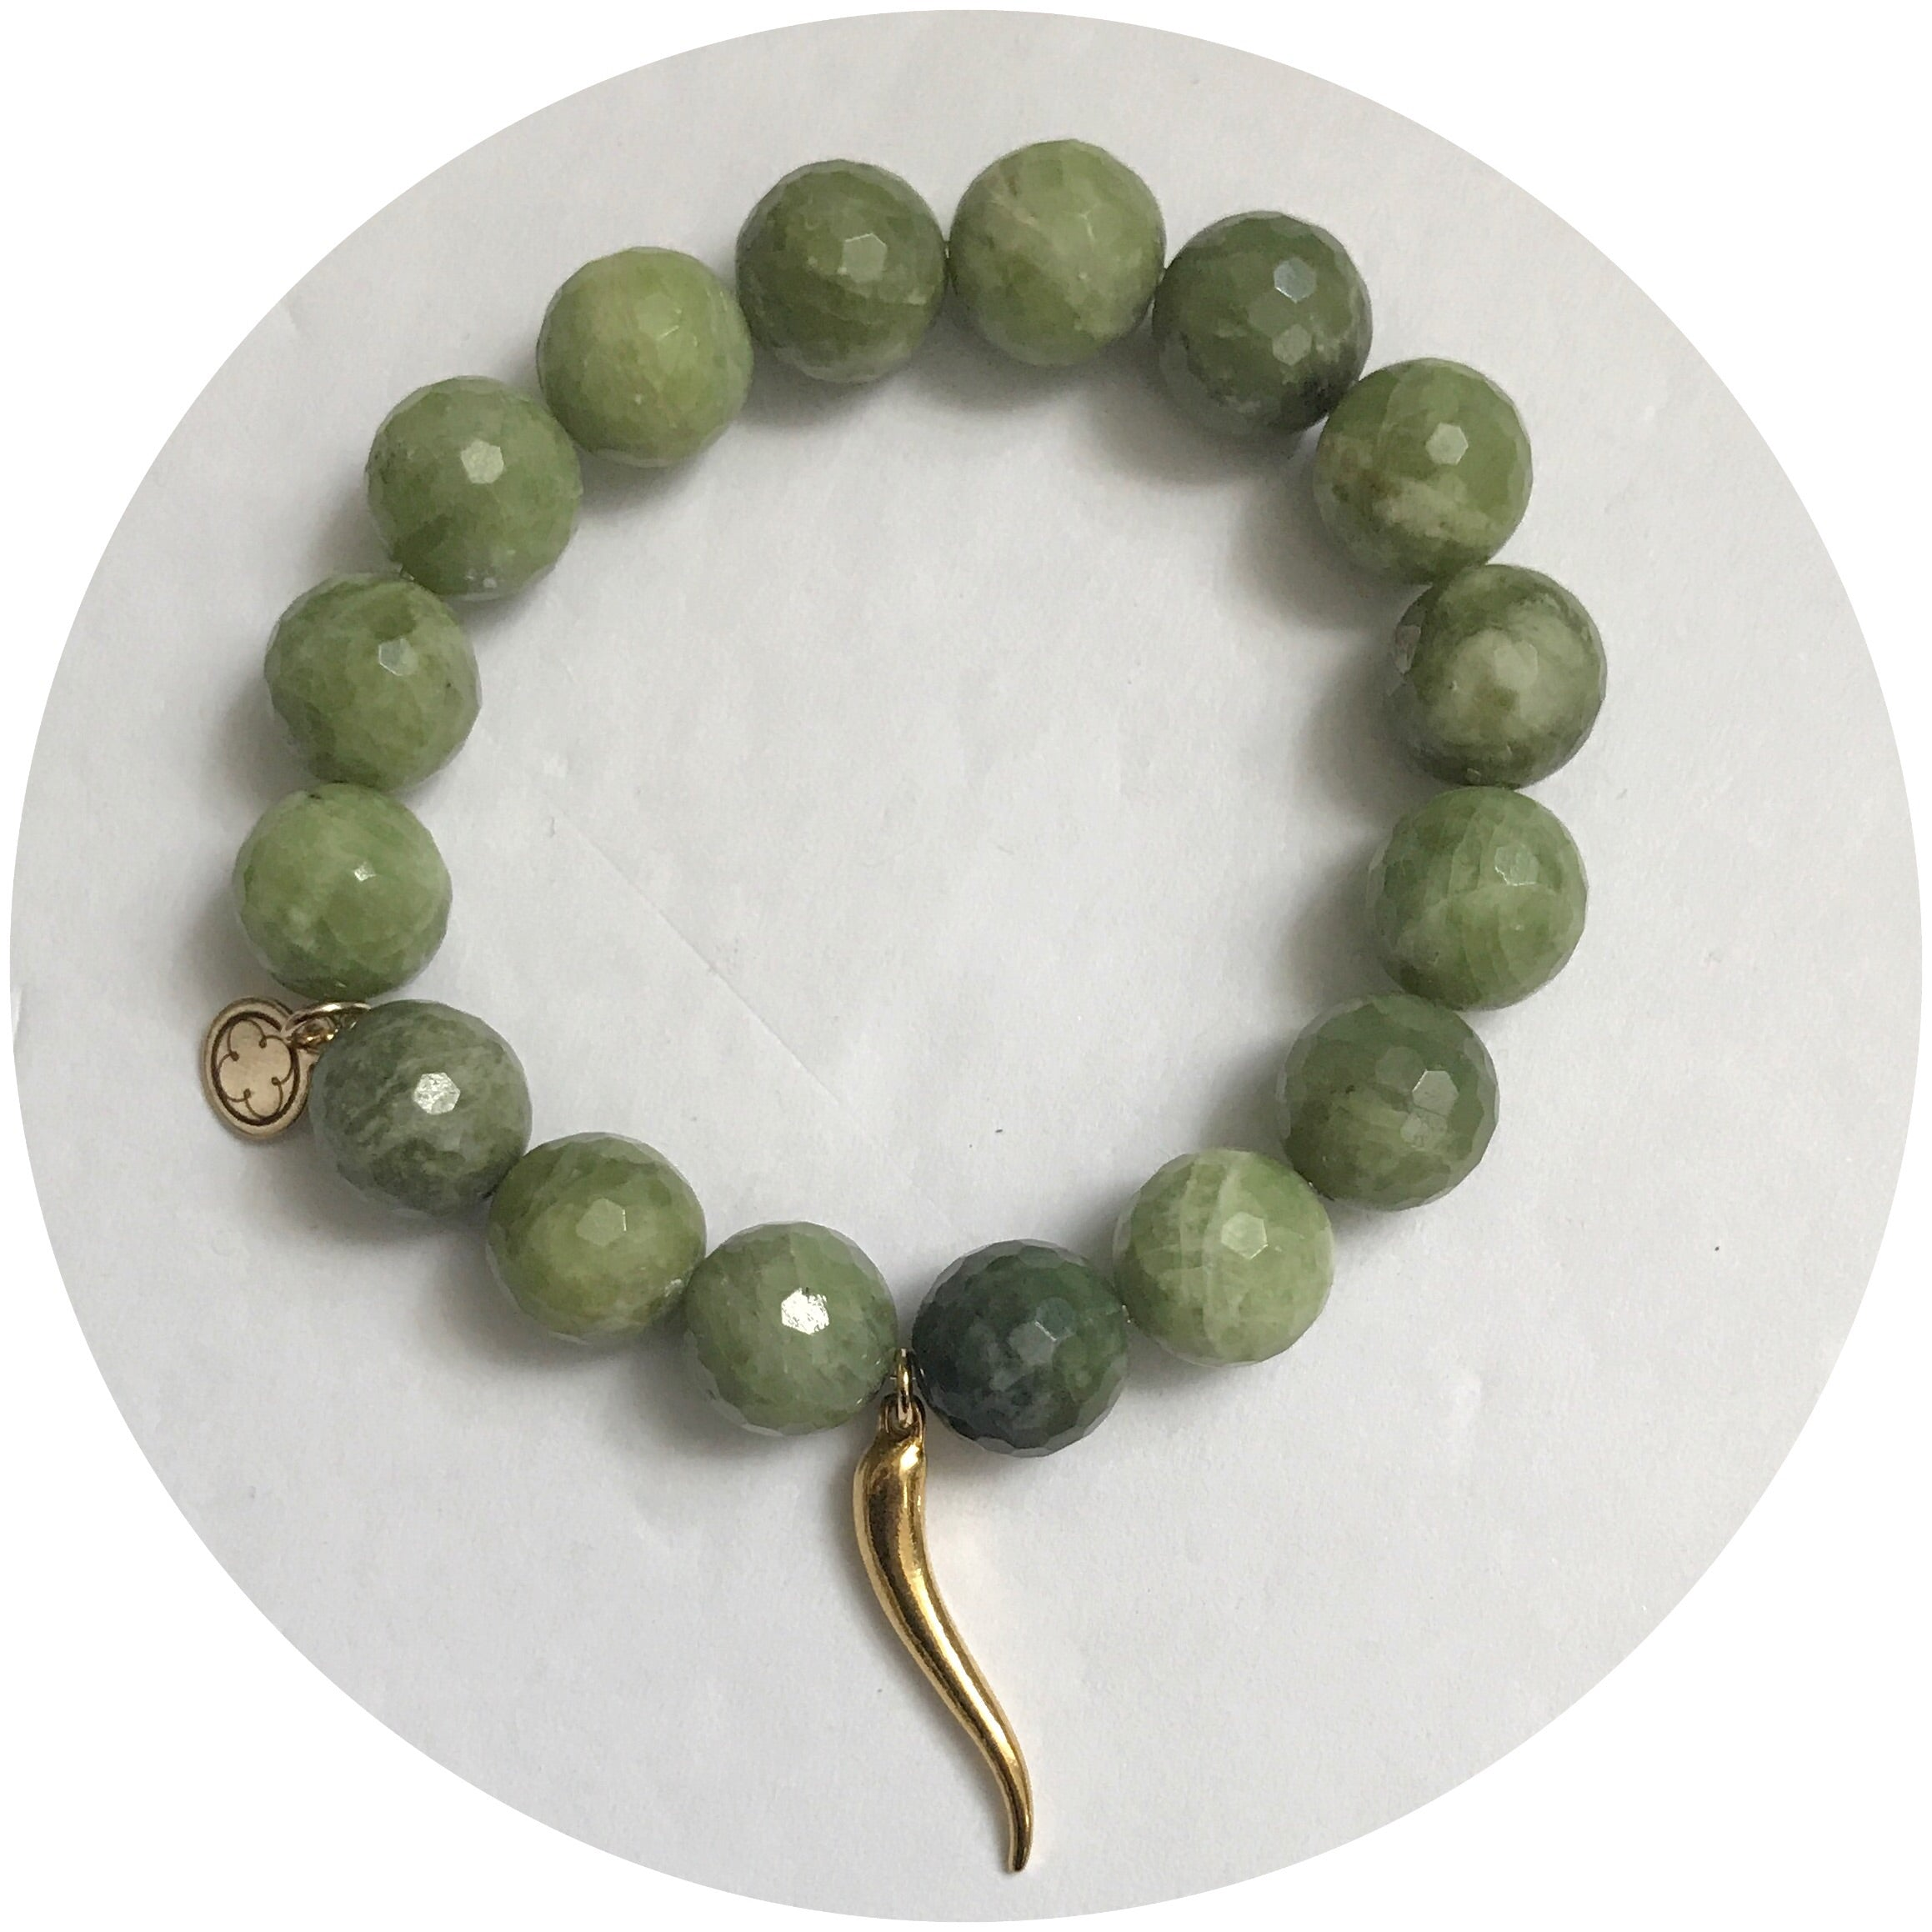 Green Garnet with Gold Horn Cornicello Pendant - Oriana Lamarca LLC